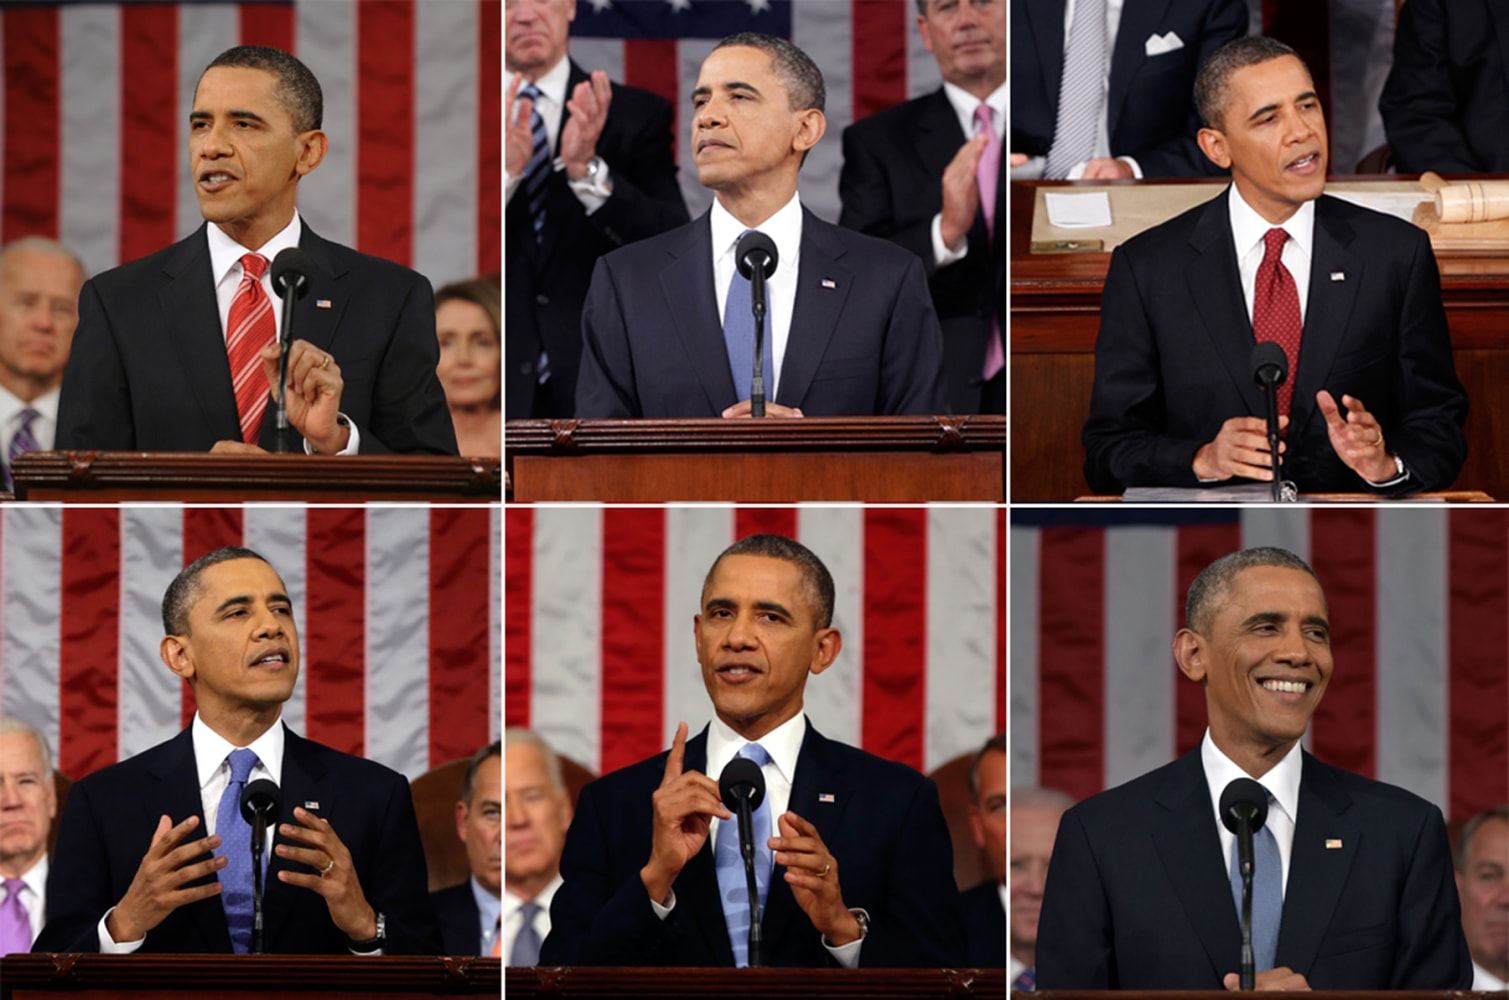 obama state of the union 2013 analysis essay